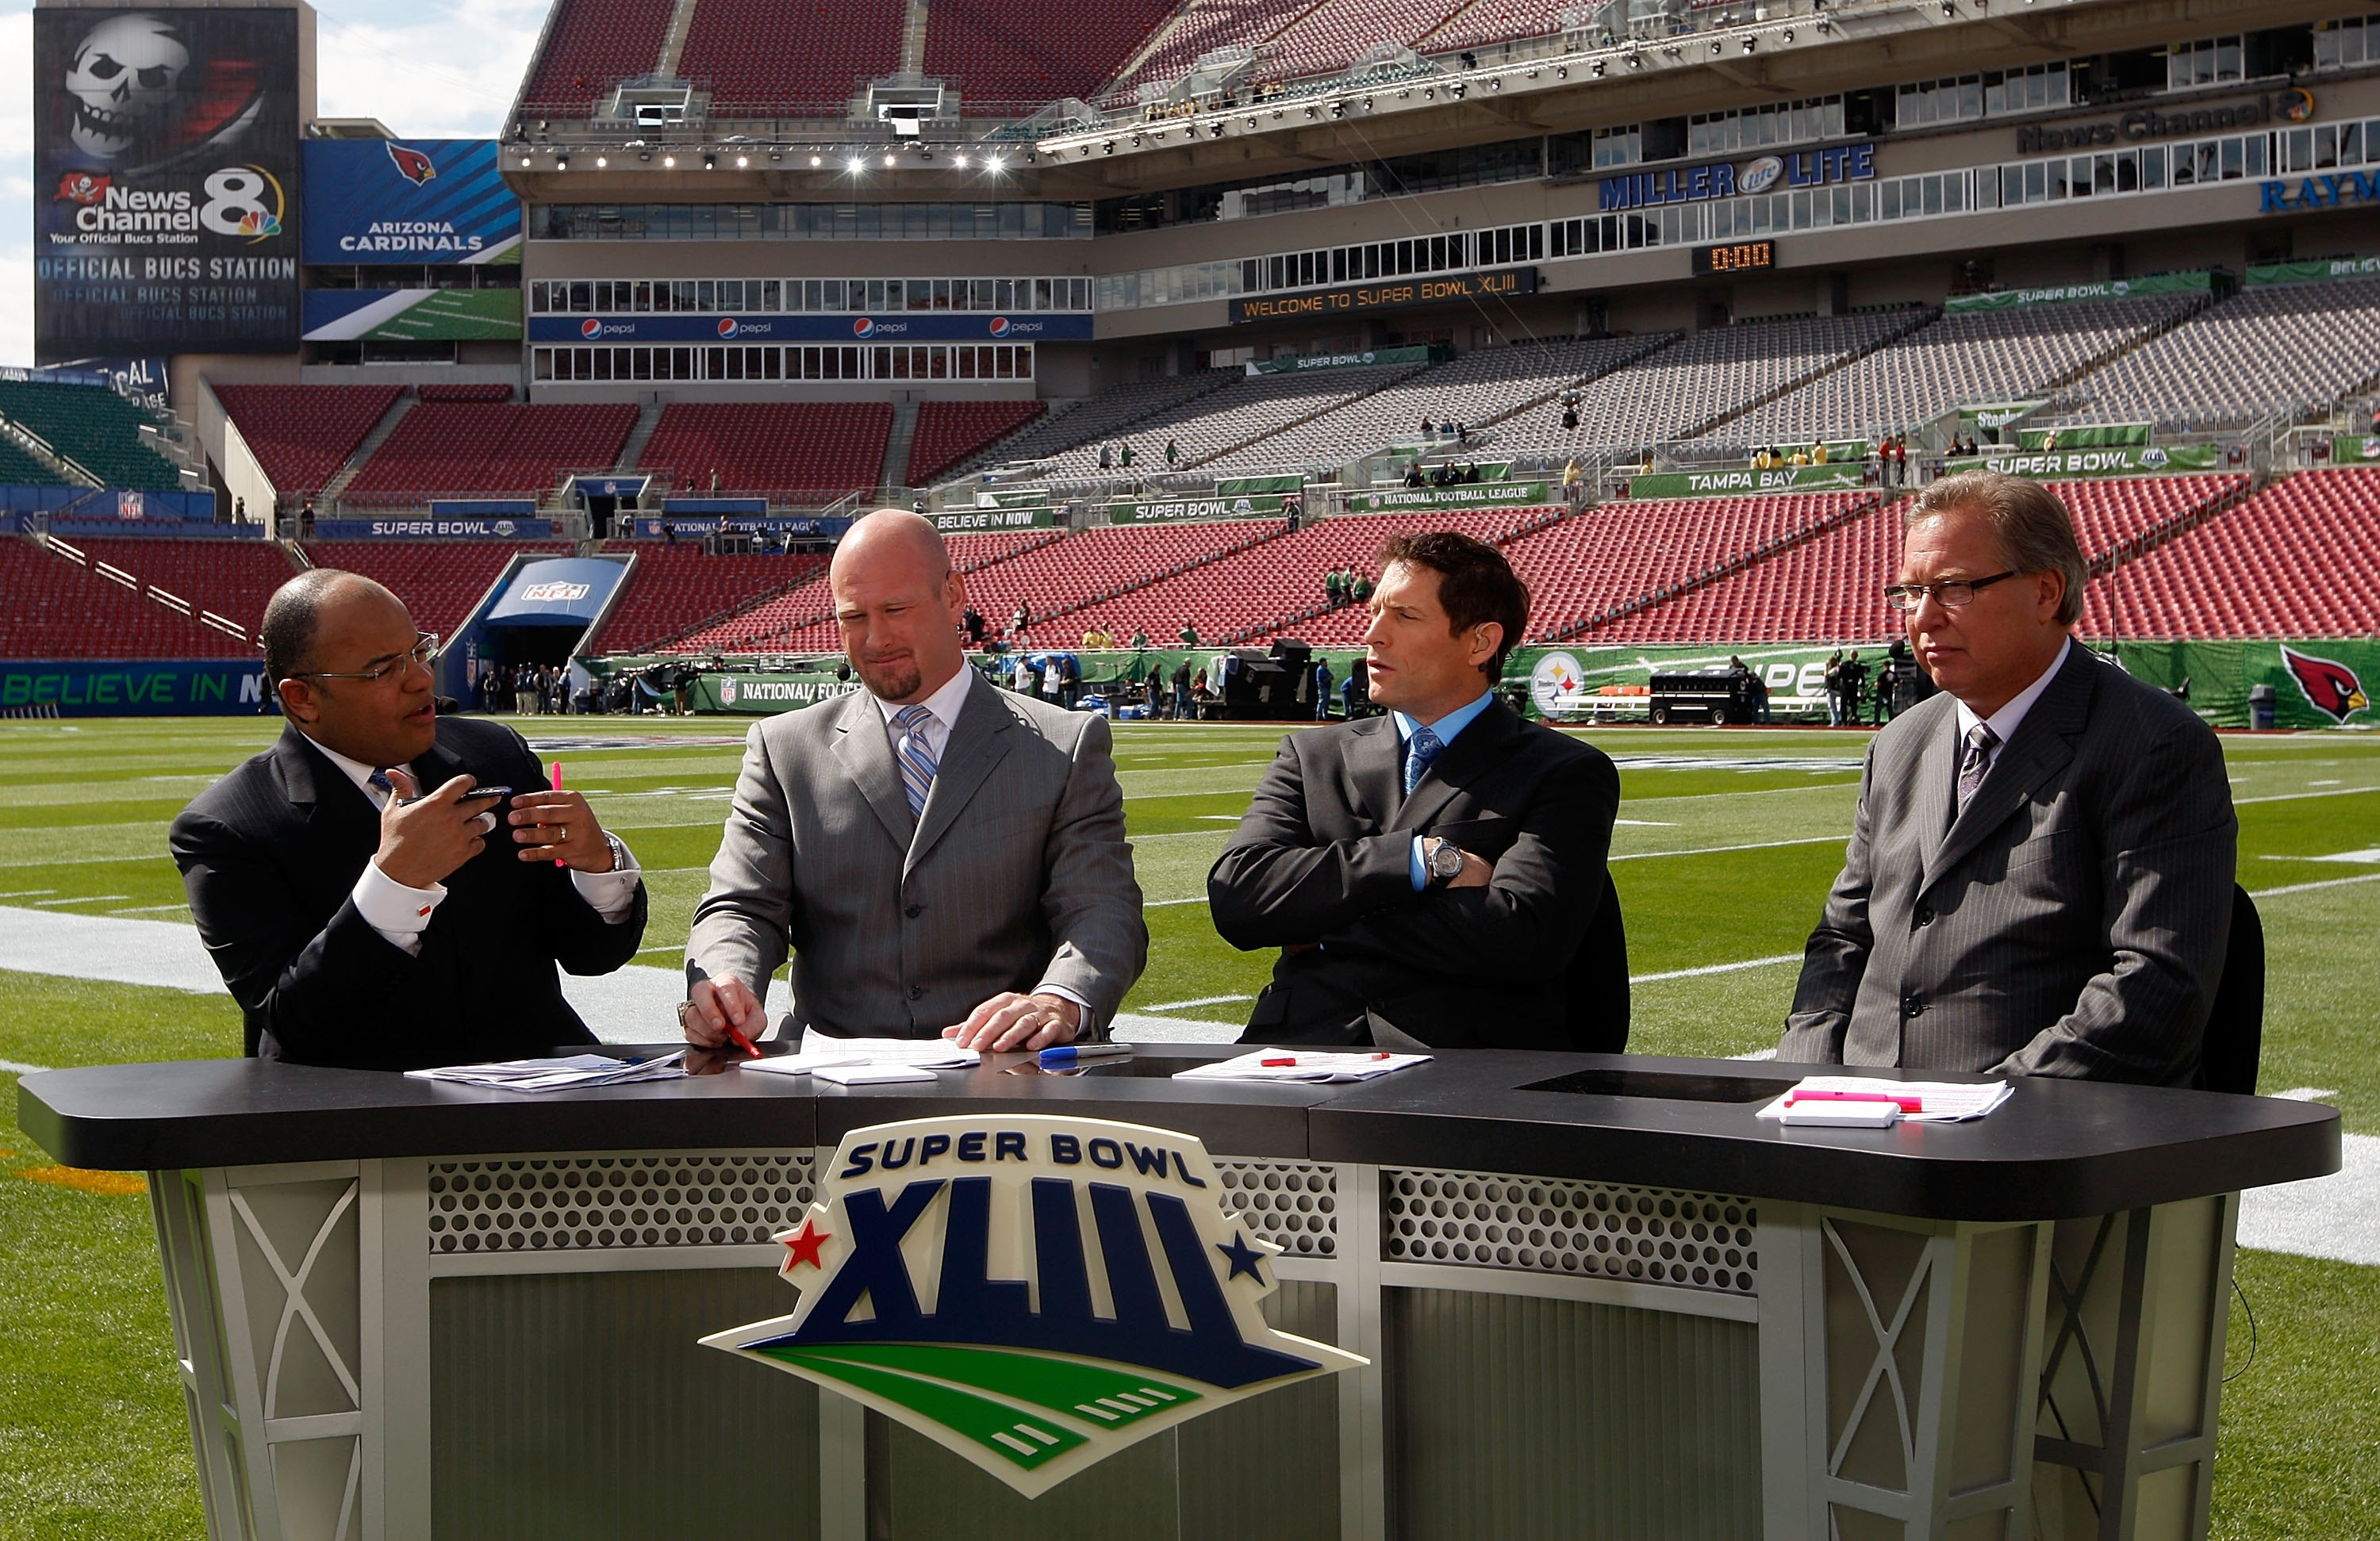 TAMPA, FL - FEBRUARY 01:  (L-R) The ESPN pregame show with host Mike Tirico and analysts Trent Dilfer, Steve Young and Ron Jaworski before Super Bowl XLIII on February 1, 2009 at Raymond James Stadium in Tampa, Florida.  (Photo by Jamie Squire/Getty Image